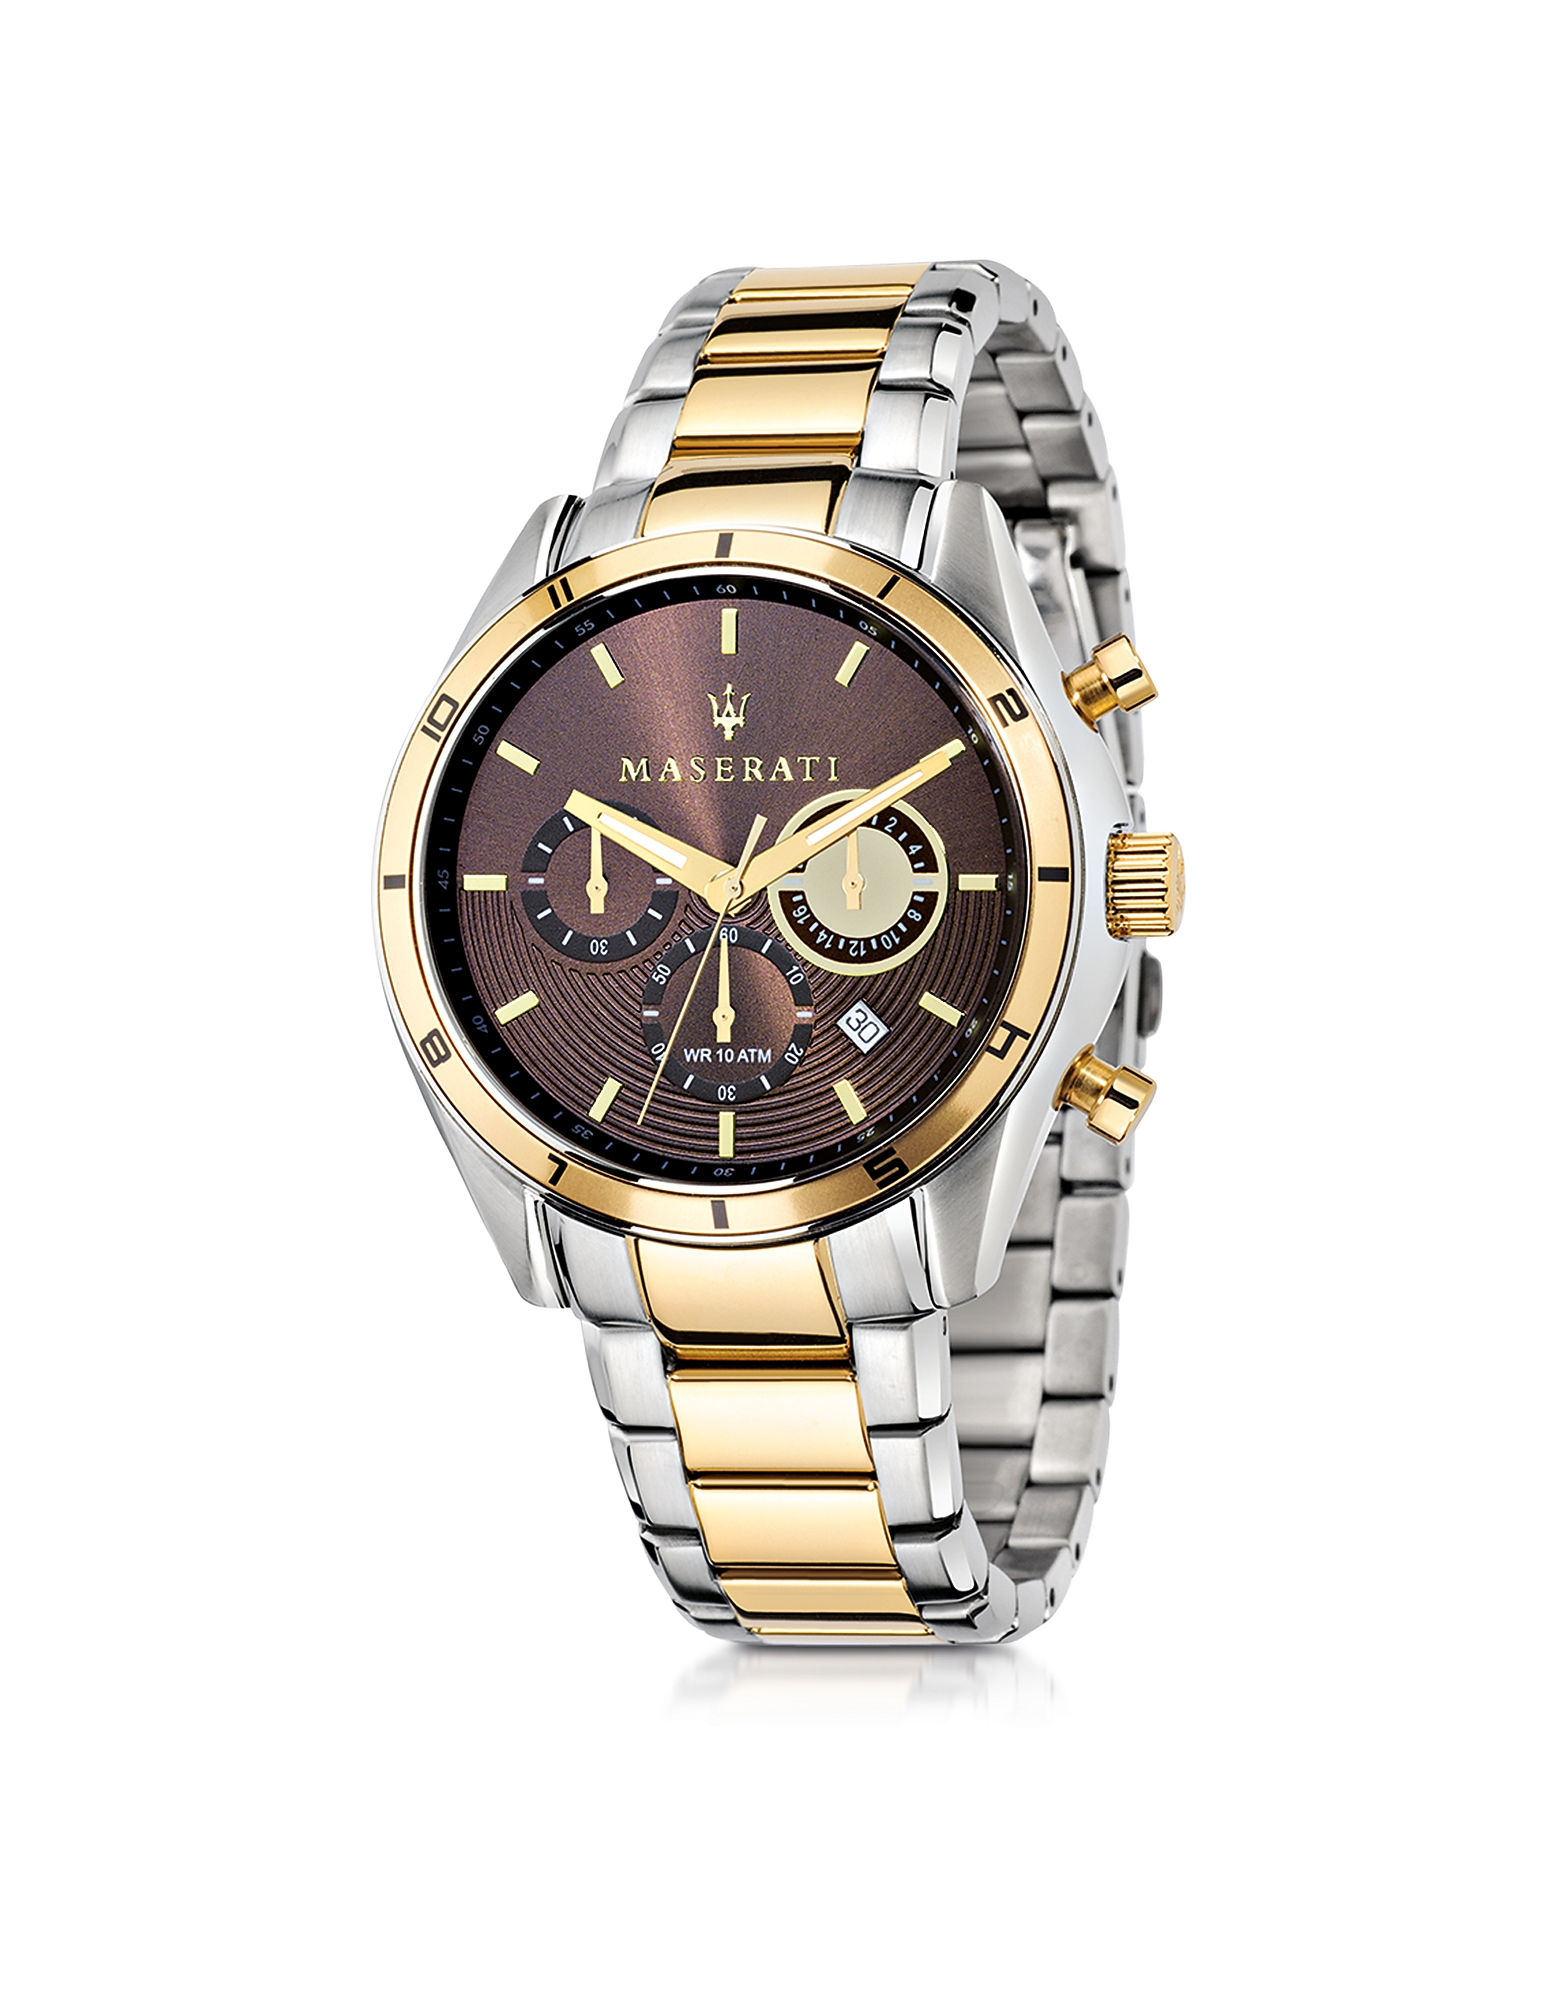 Maserati Men's Watches, Sorpasso Two Tone Stainless Steel Chrono Men's Watch